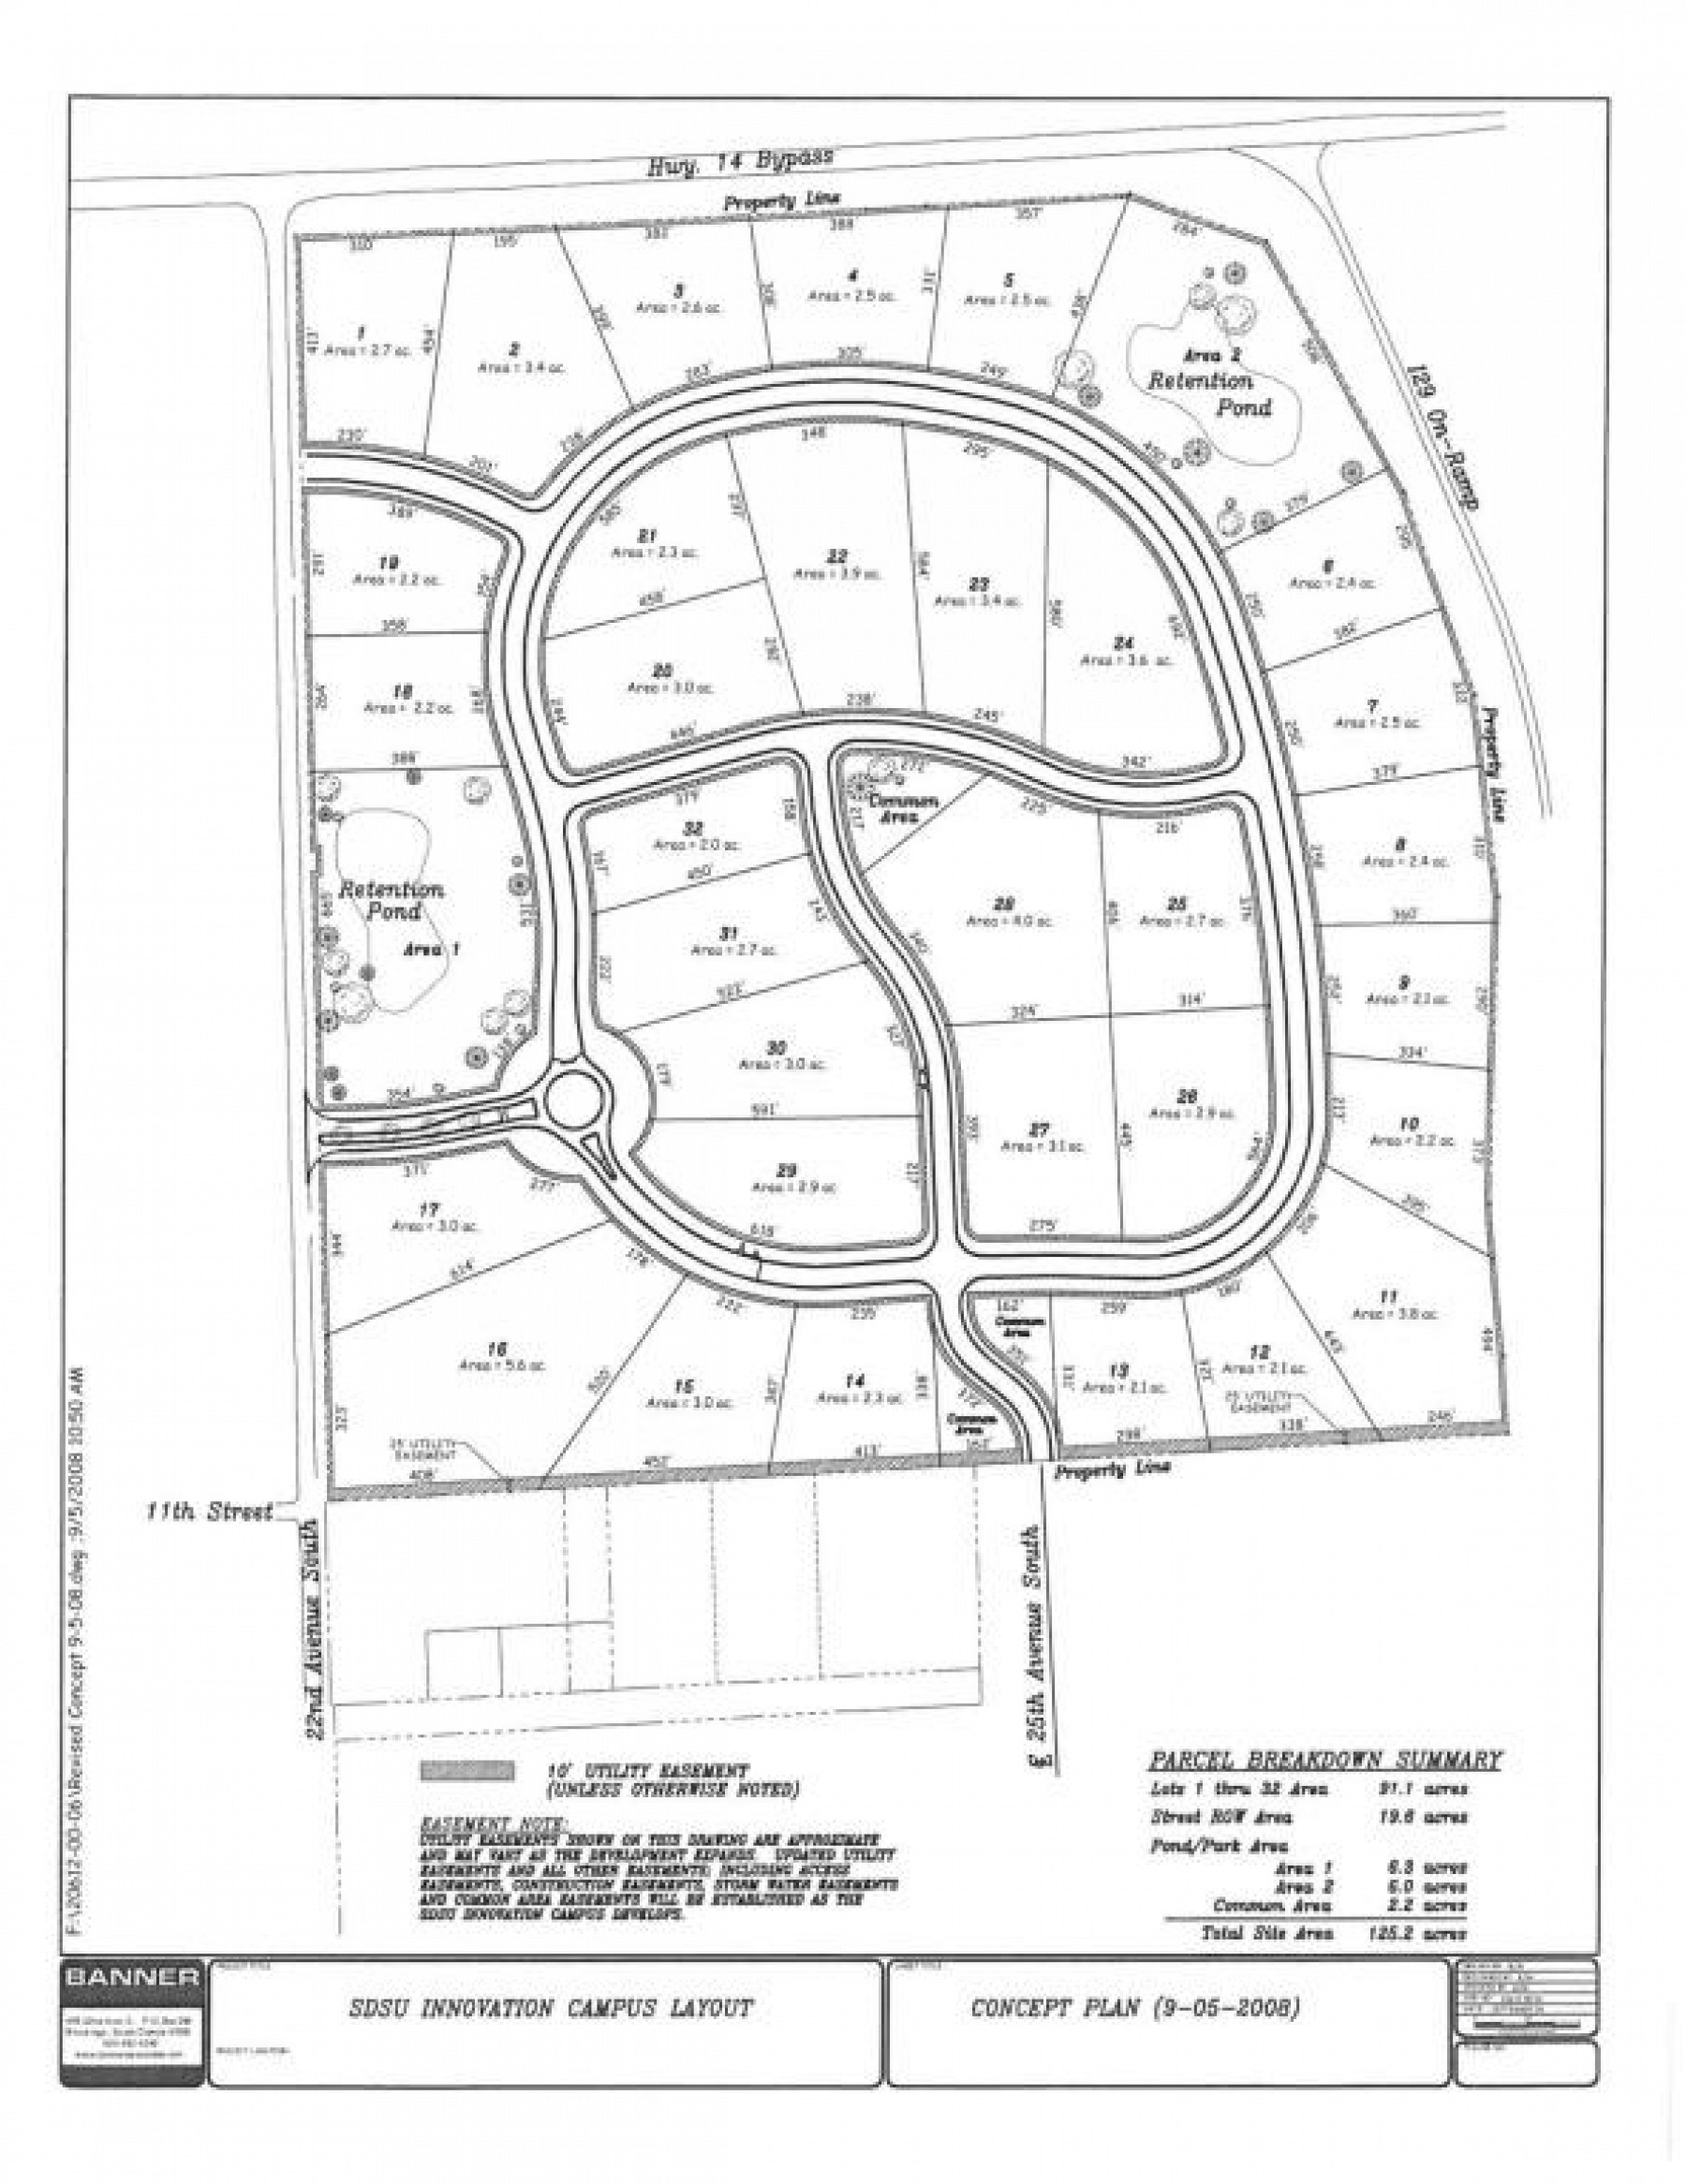 Lot 17 Innovation Campus, Brookings, SD 57006